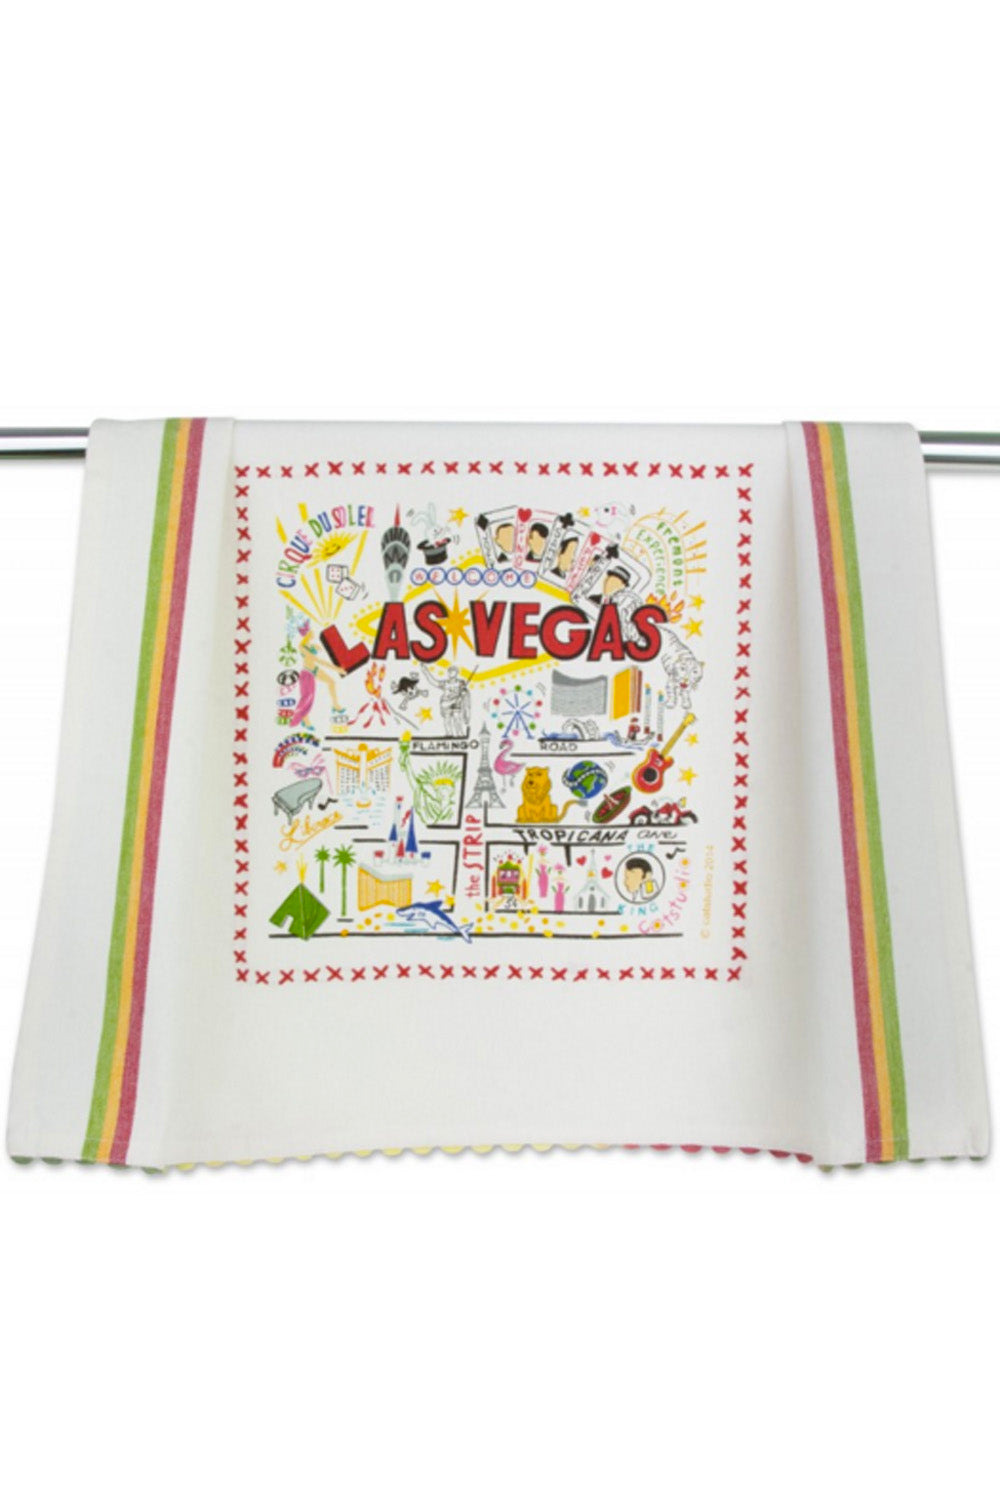 Embroidered Dish Towel - Las Vegas